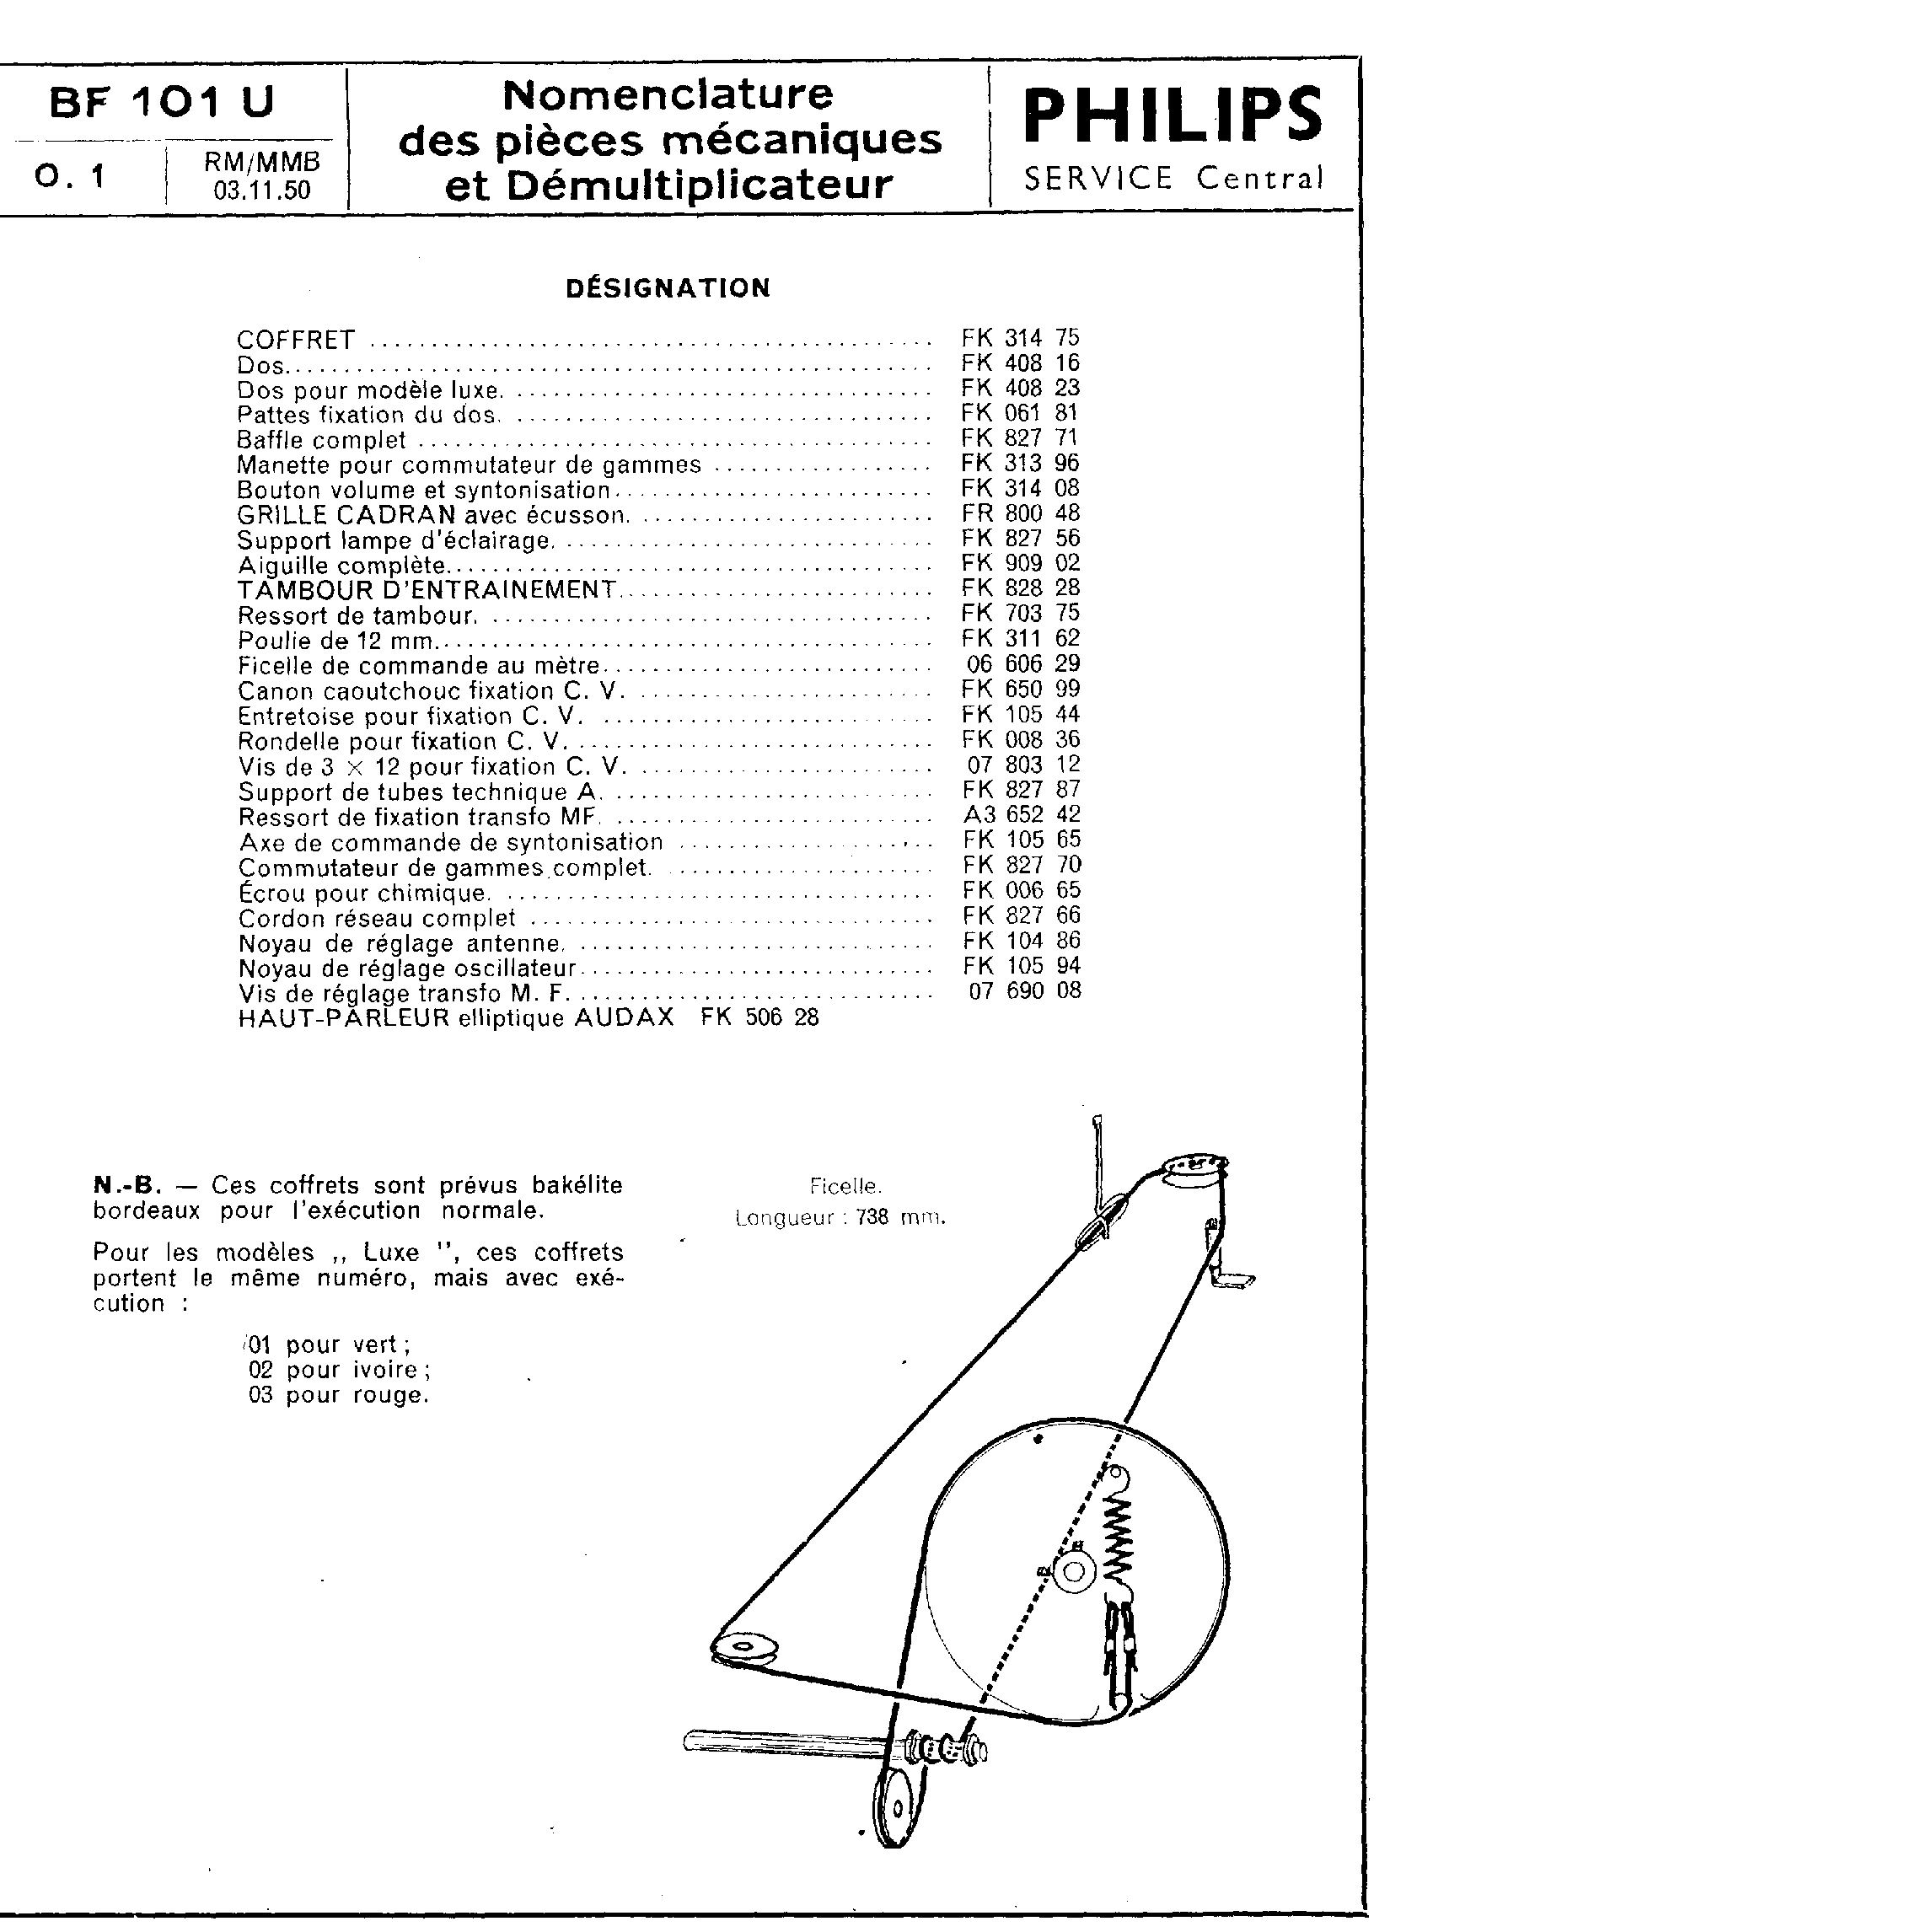 Philips Radio Schematic Diagram Circuit And Schematics Am Receiver Using Tda 1072at Ic Diagrams Dial String Antique French Radios Classic Gallery Vintage